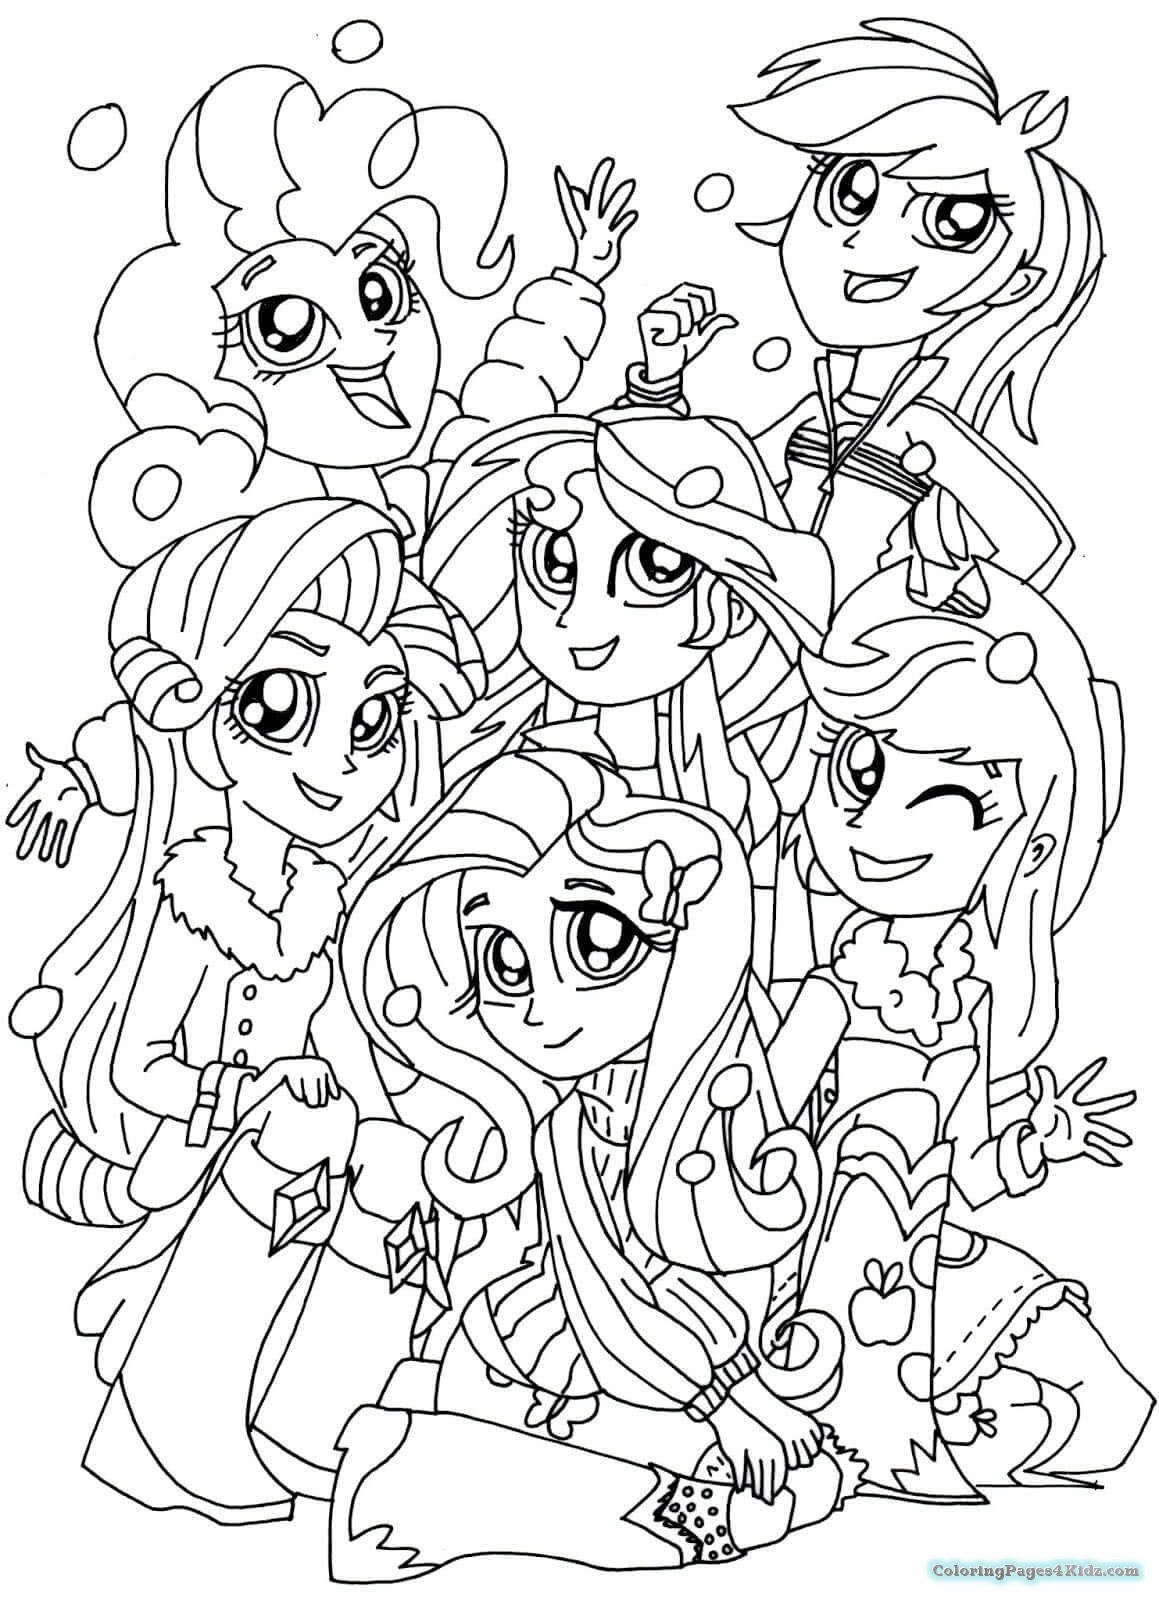 Coloring Pages My Little Pony Equestria At Getdrawingscom Free